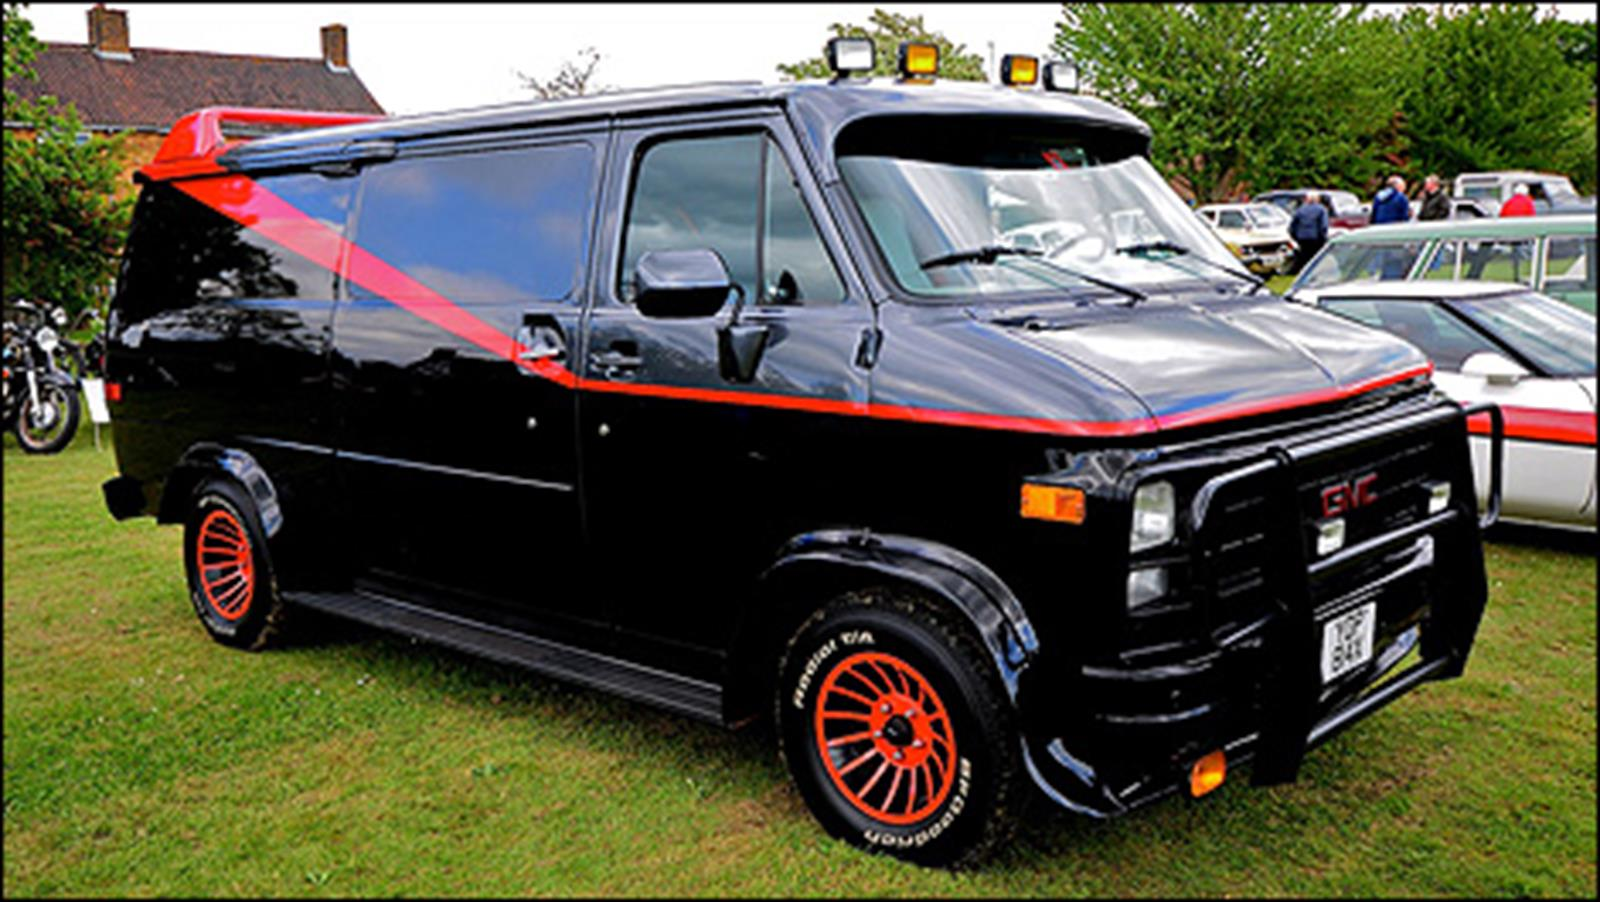 A team van for sale